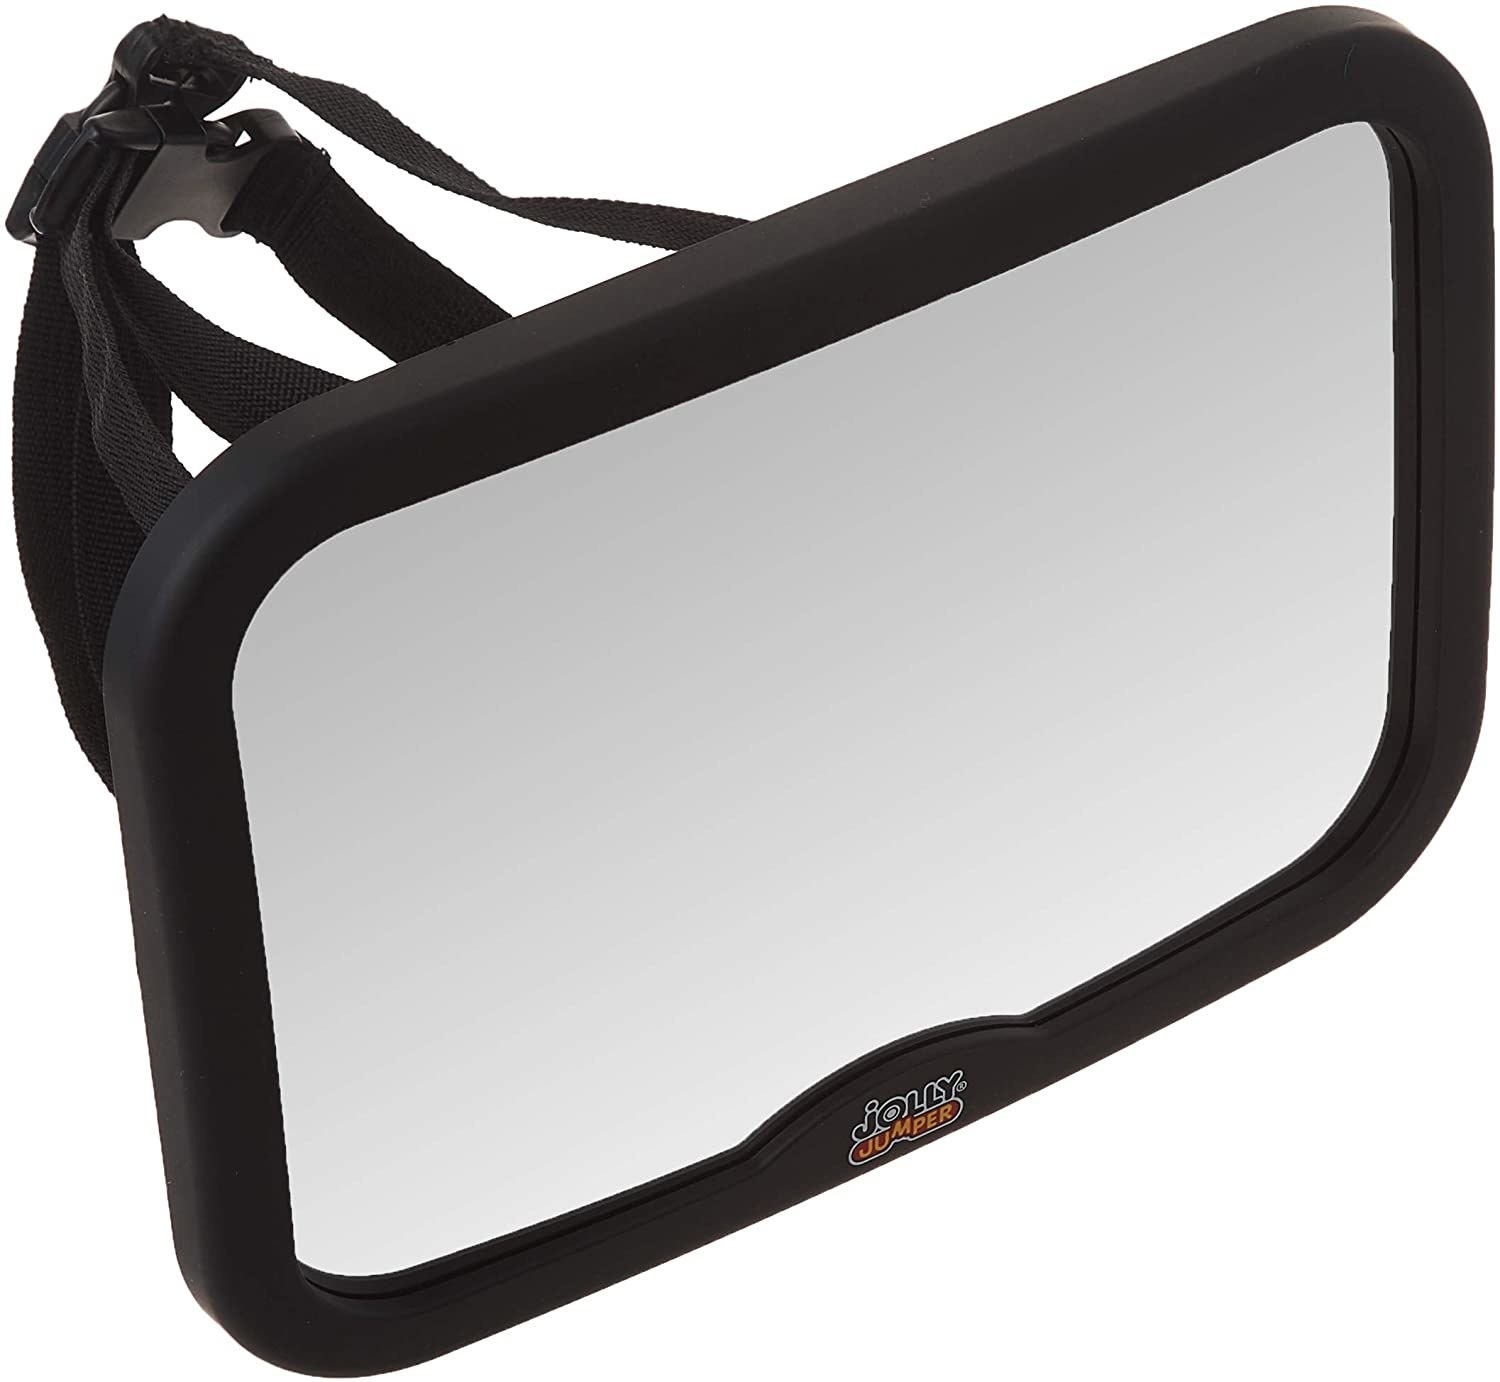 A rectangular mirror in a thick plastic frame with straps attached to the back